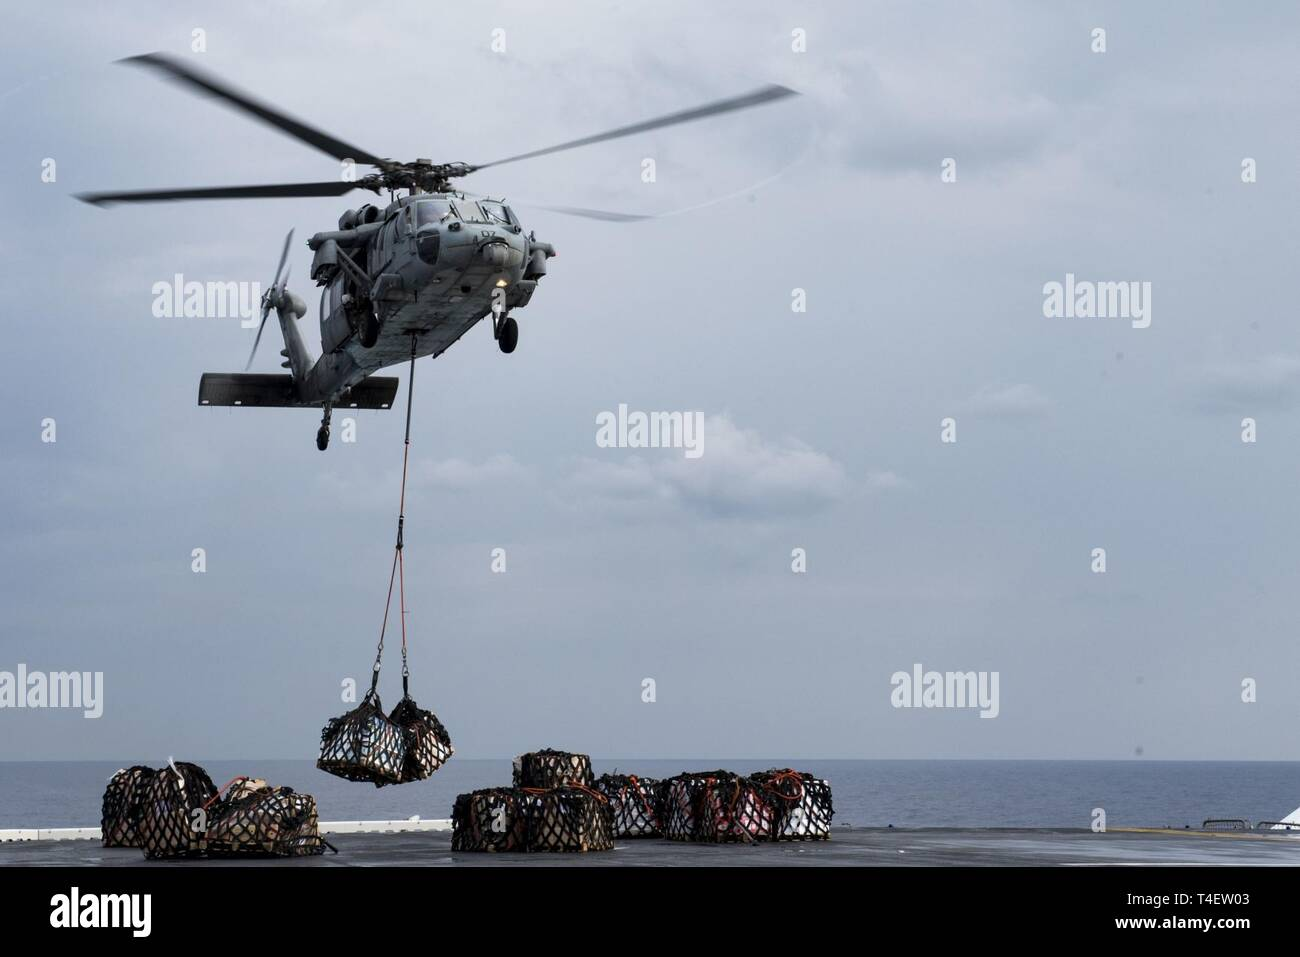 SOUTH CHINA SEA (April 4, 2019) –  An MH-60S Sea Hawk assigned to Helicopter Sea Combat Squadron (HSC) 25 lowers supplies onto the flight deck of the amphibious assault ship USS Wasp (LHD 1) during a replenishment-at-sea during Exercise Balikatan 2019. Exercise Balikatan, in its 35th iteration, is an annual U.S., Philippine military training exercise focused on a variety of missions, including humanitarian assistance and disaster relief, counter-terrorism, and other combined military operations. - Stock Image